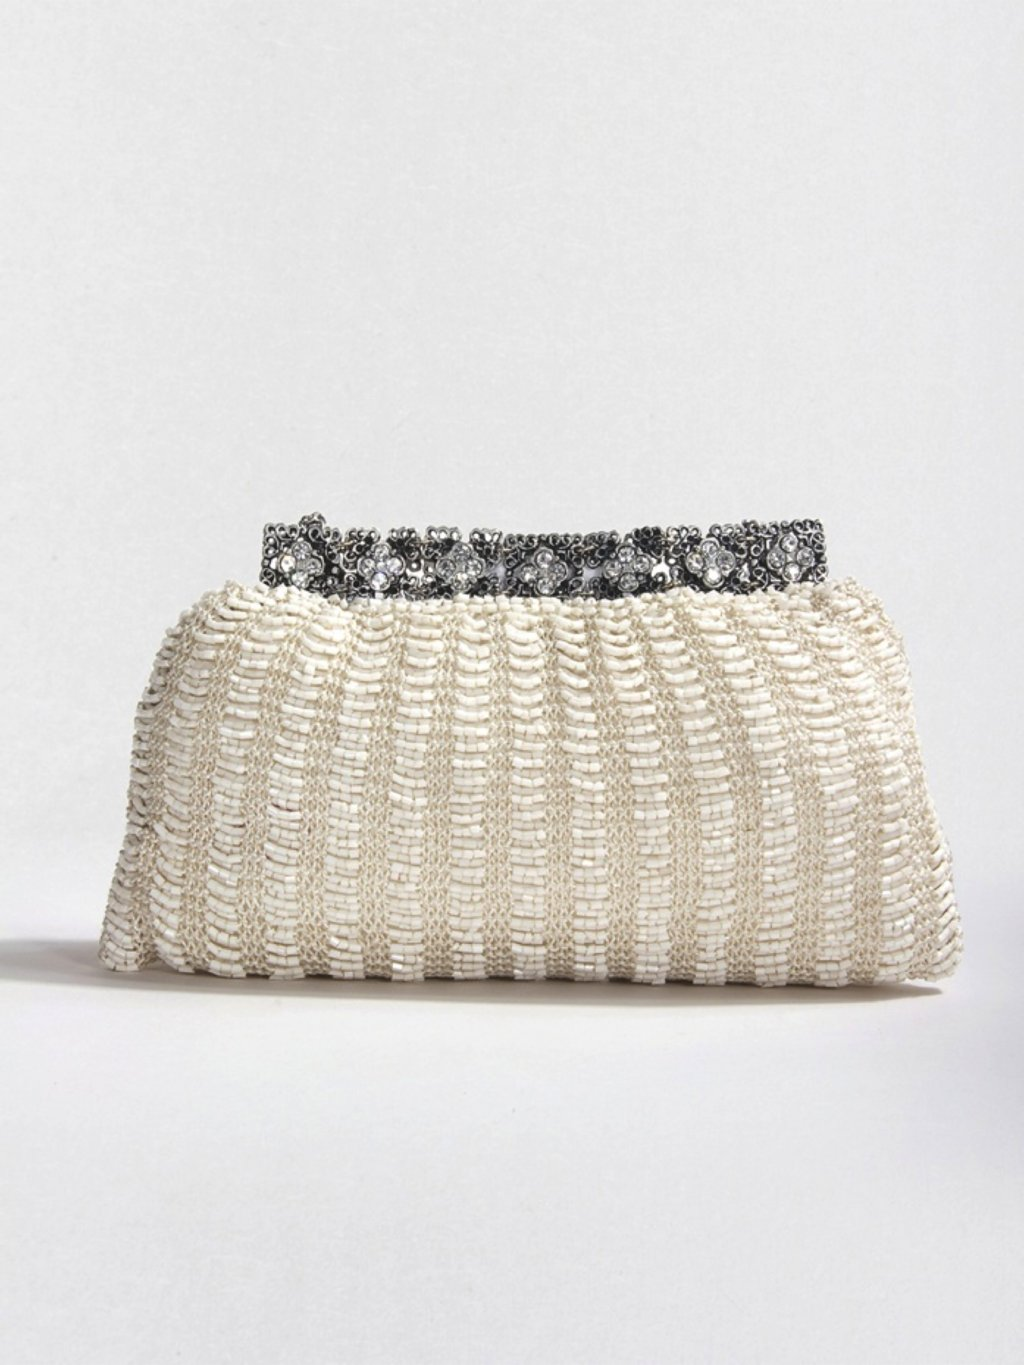 Vintage-inspired ivory beaded bridal clutch with Swarovski crystals